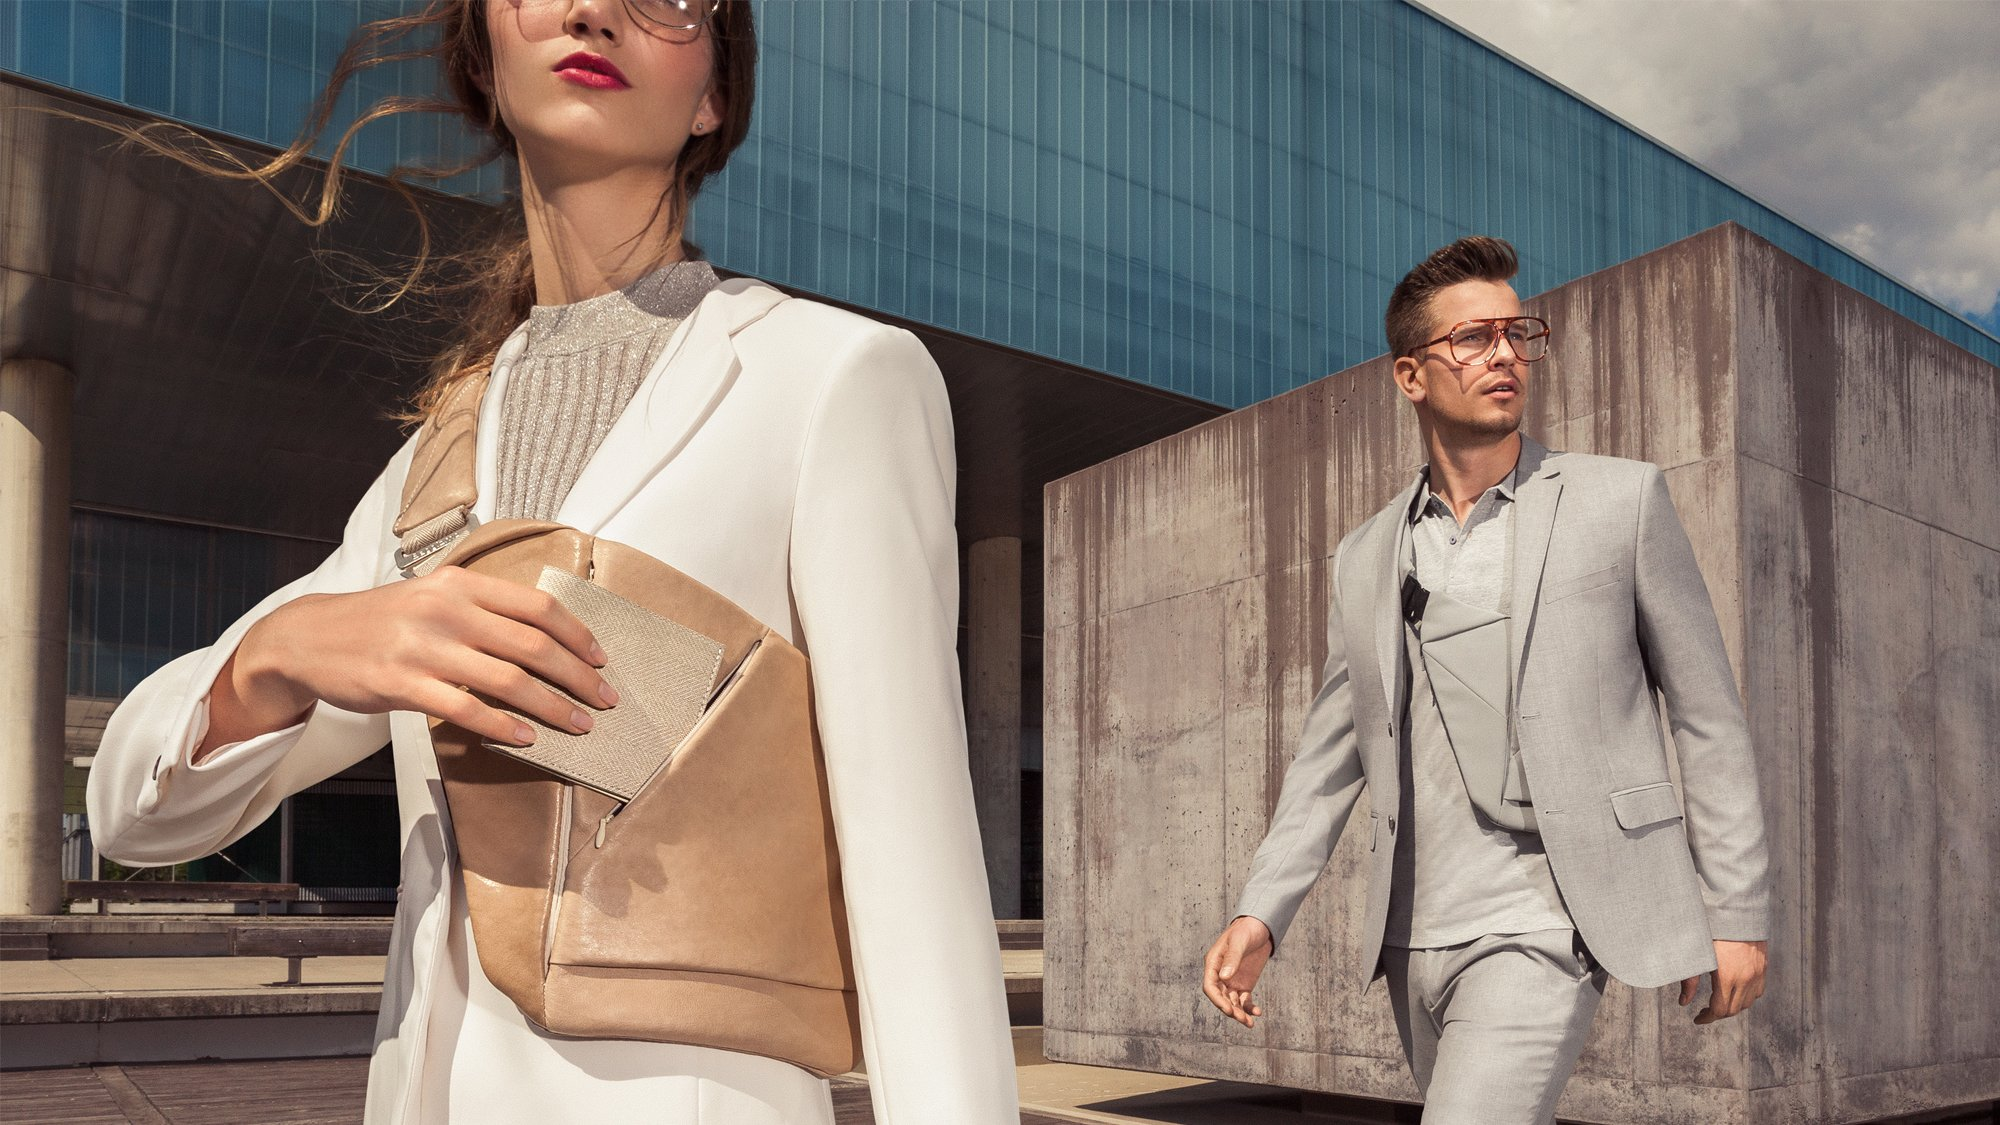 Woman in white suit and man in grey suit wearing Baggizmo genuine leather crossbody bag